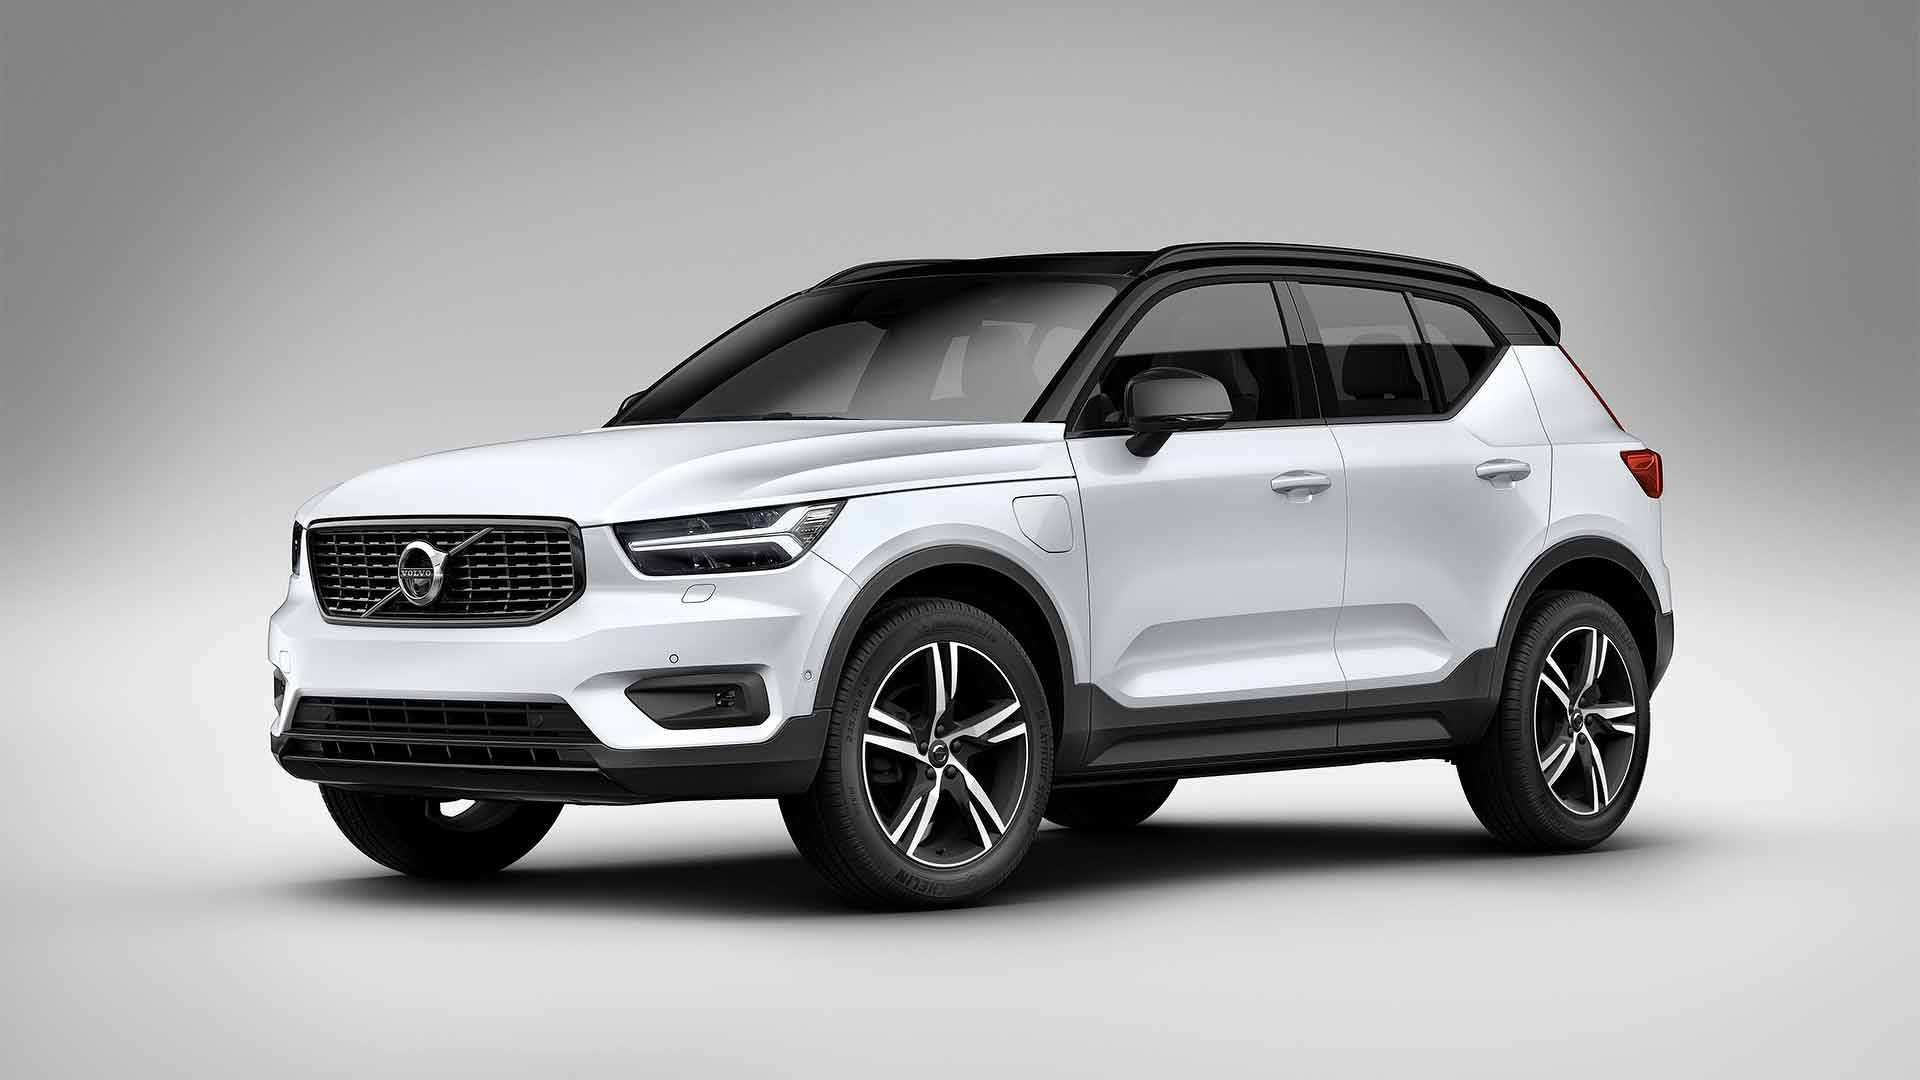 67 All New Electric Volvo 2019 Model